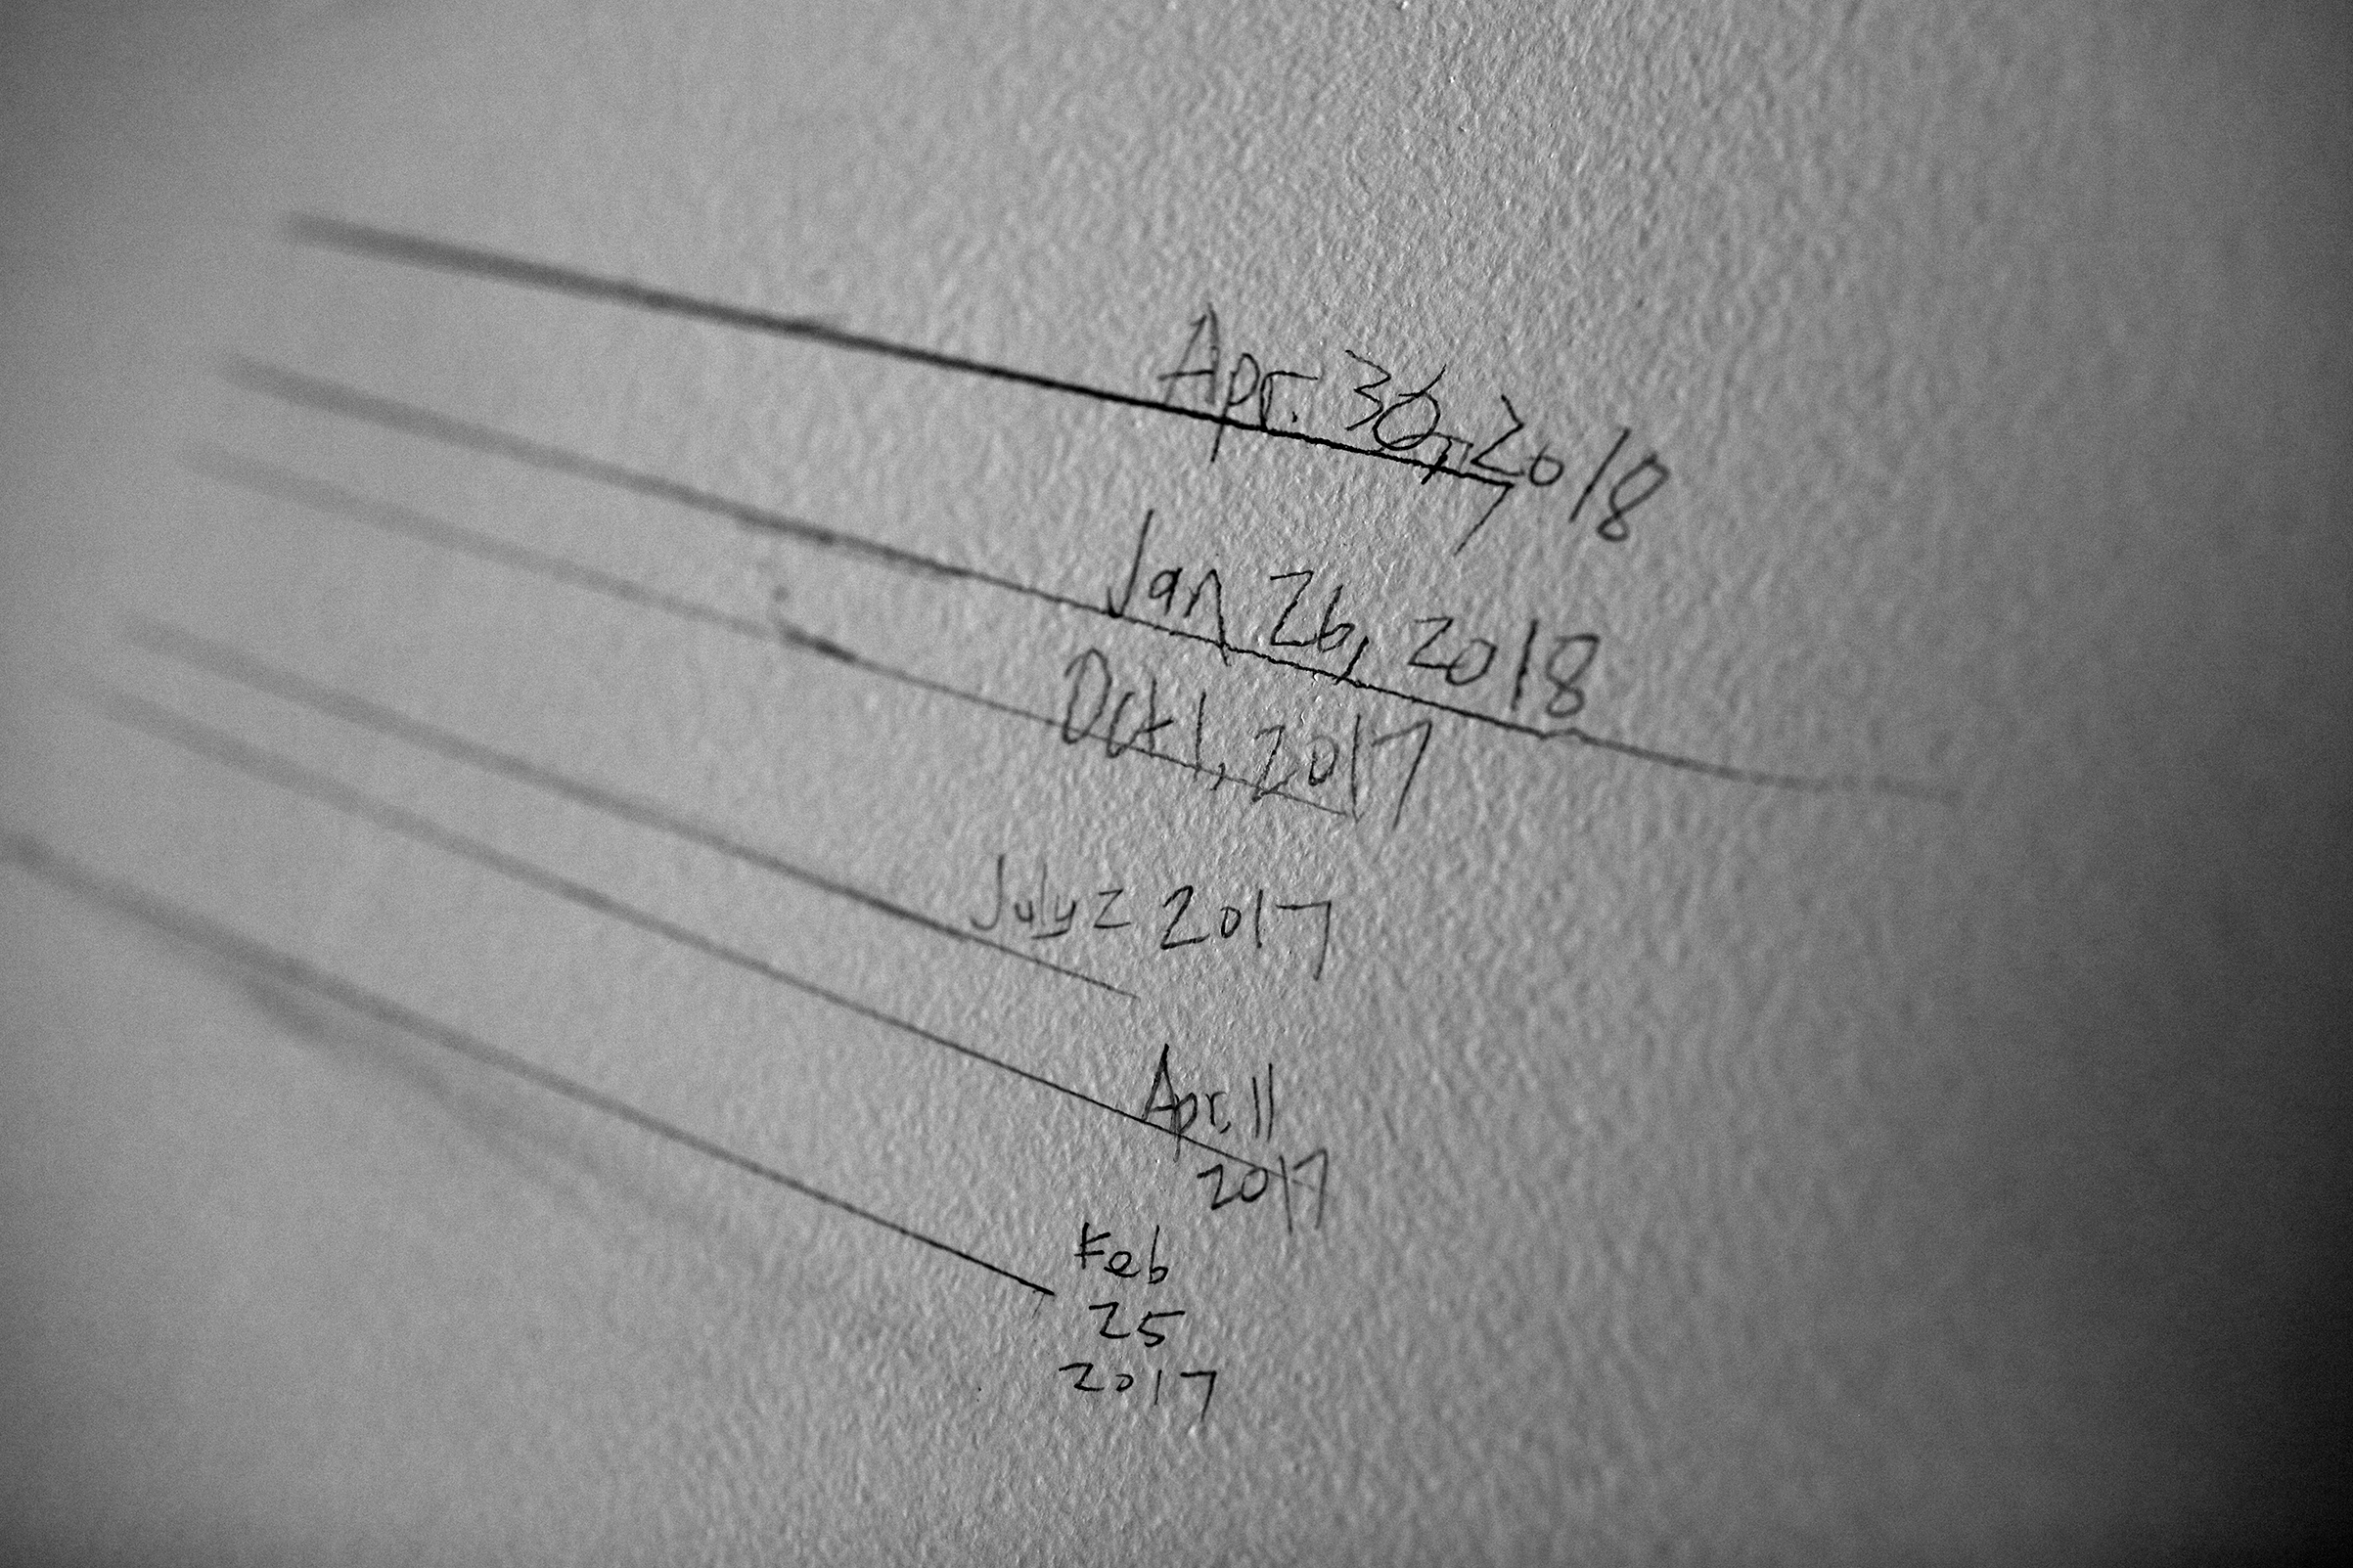 Lotus' growth chart on the wall at home. She's grown almost 4 inches in the last year and Forest has grown almost 5.